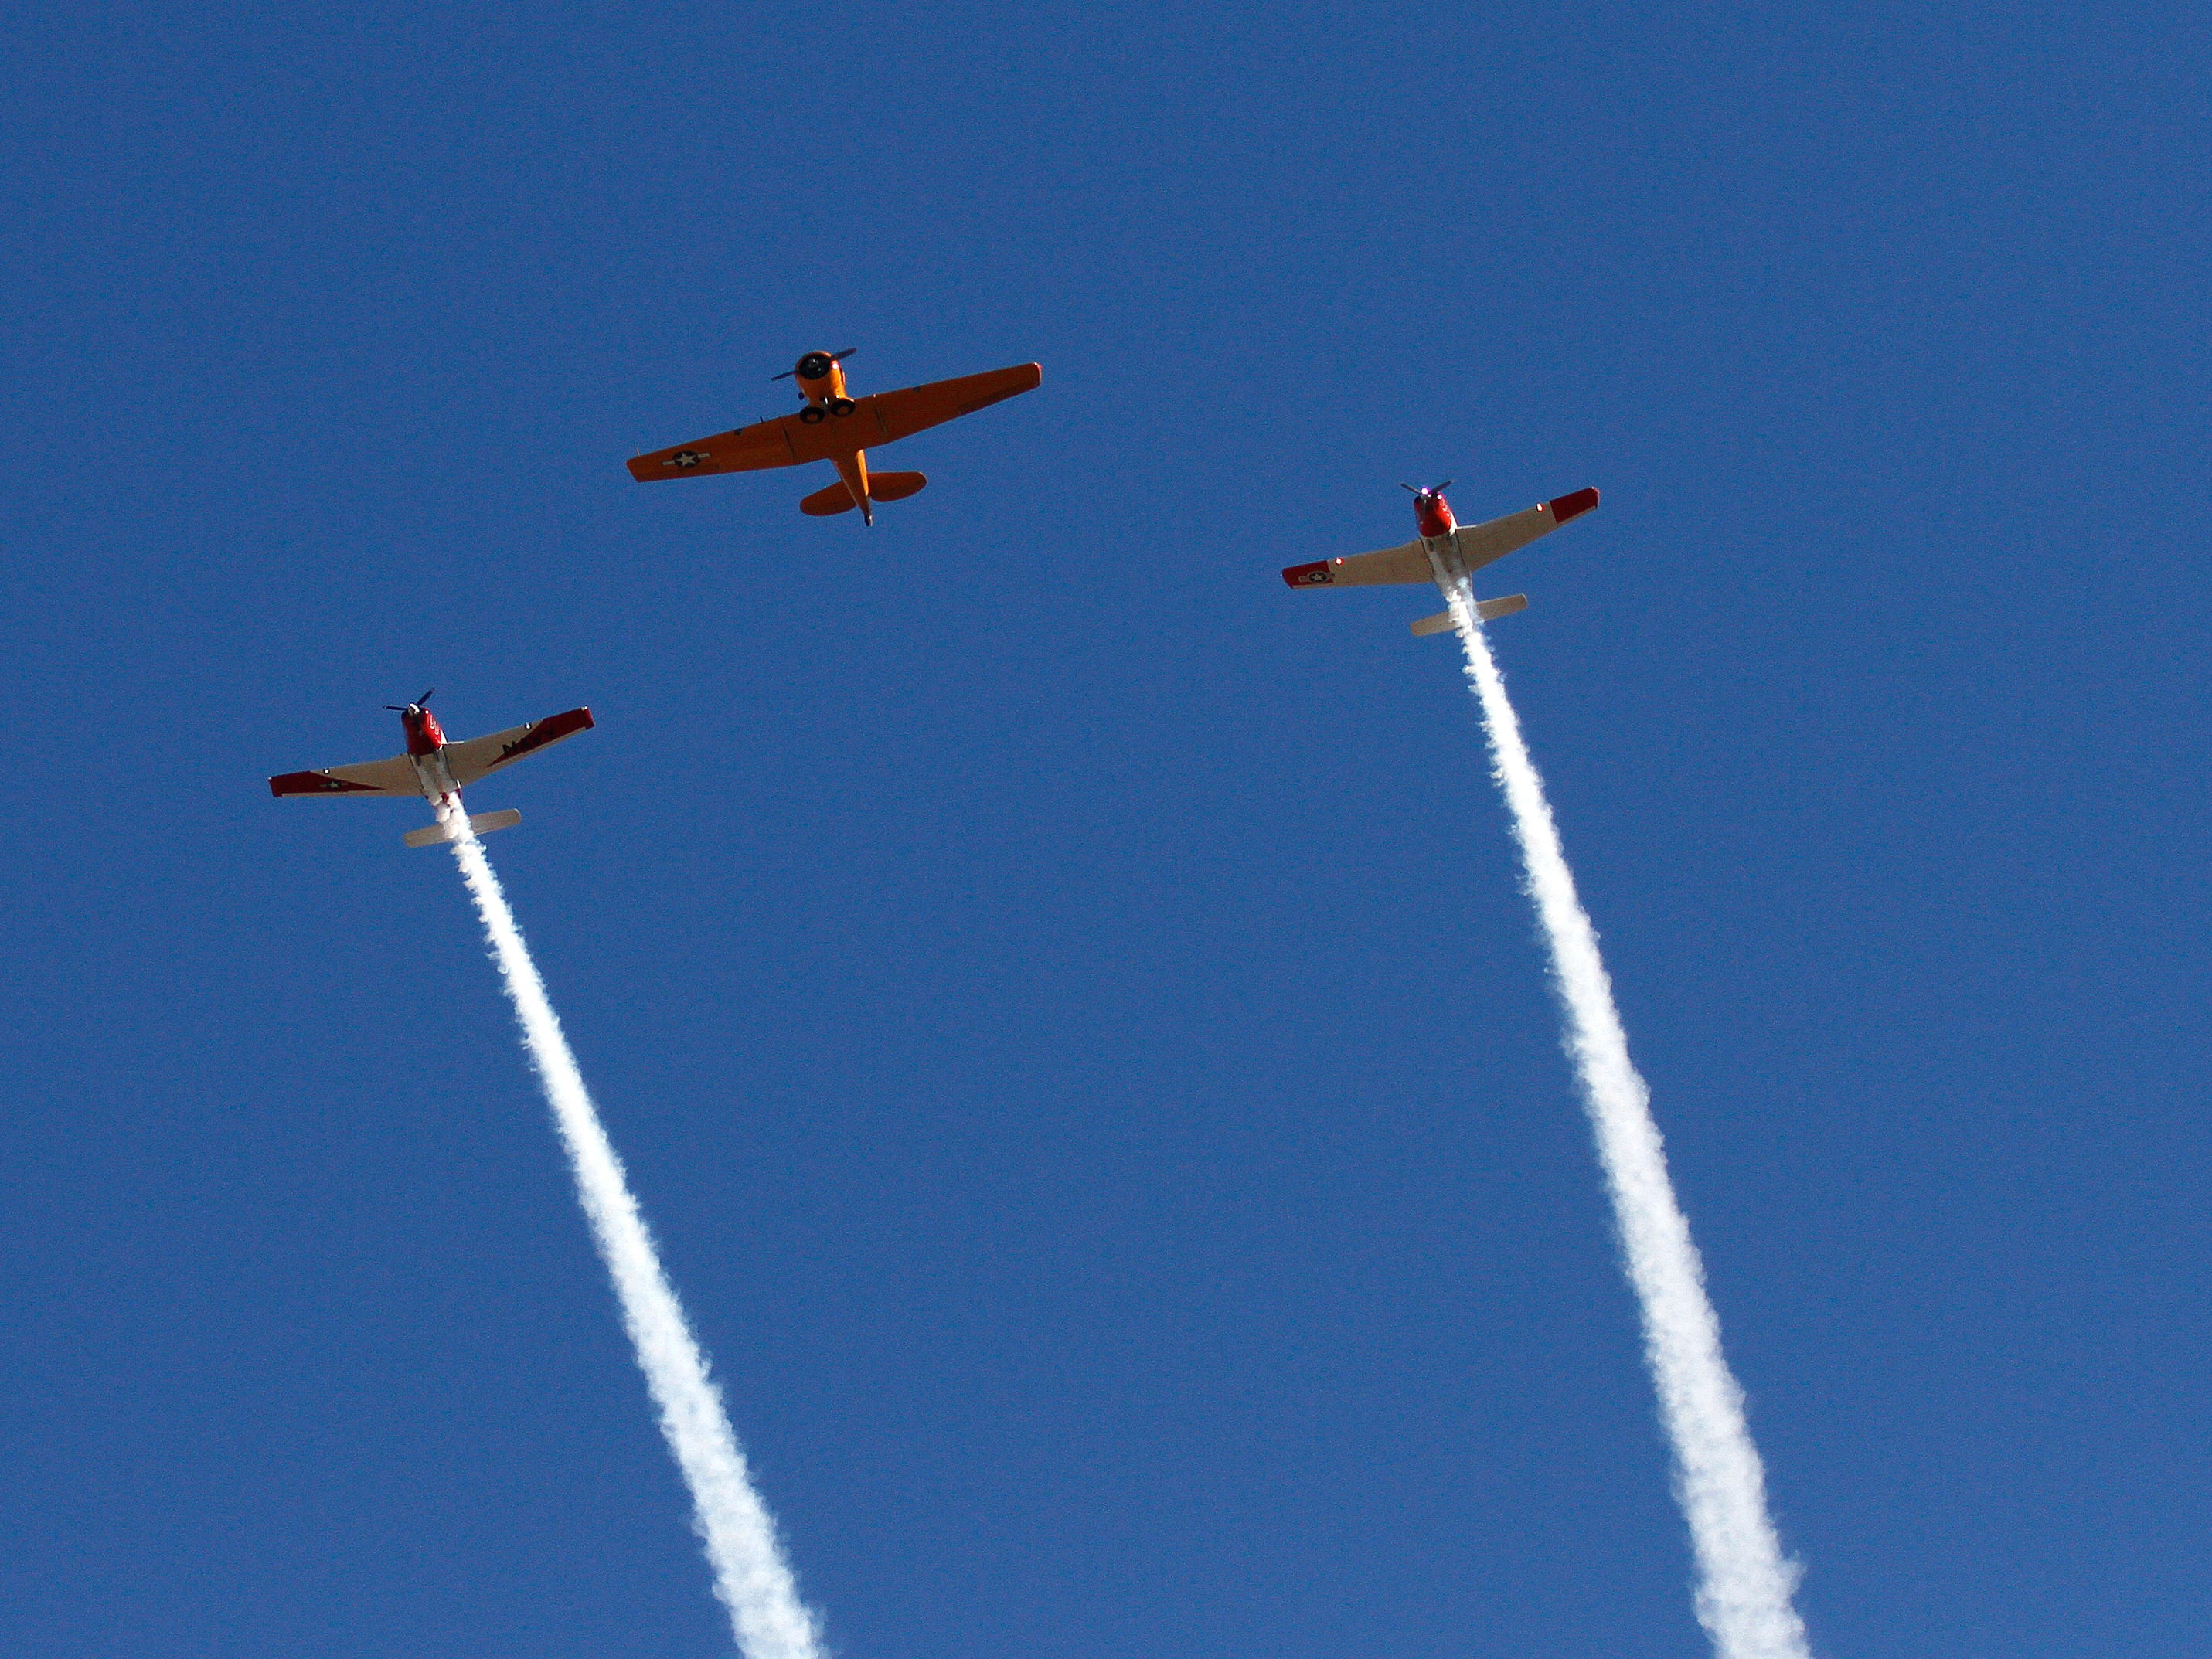 Airplanes fly in formation over the route to commemorate the beginning of the Camarillo Christmas parade on Saturday.